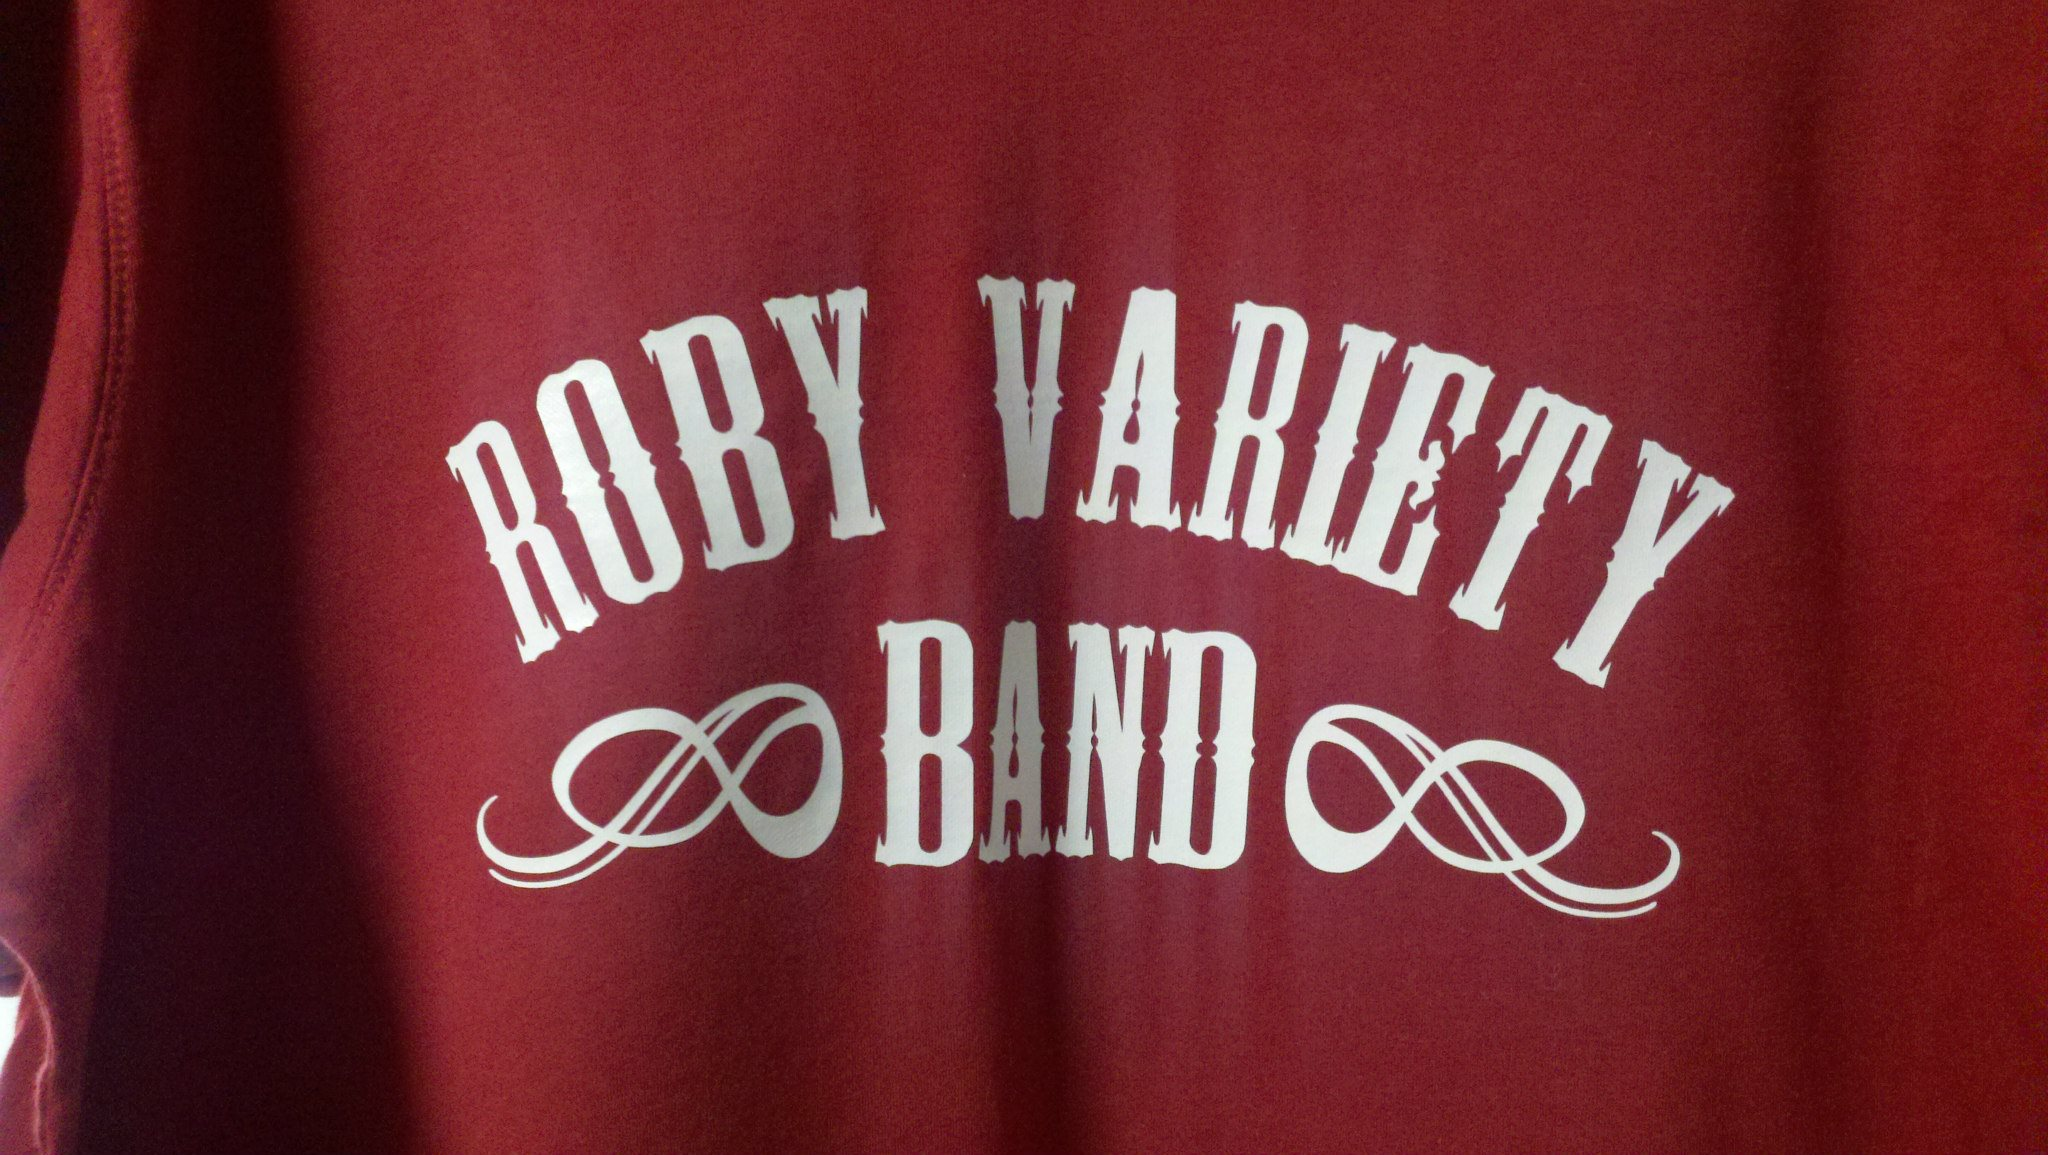 Roby Variety Band